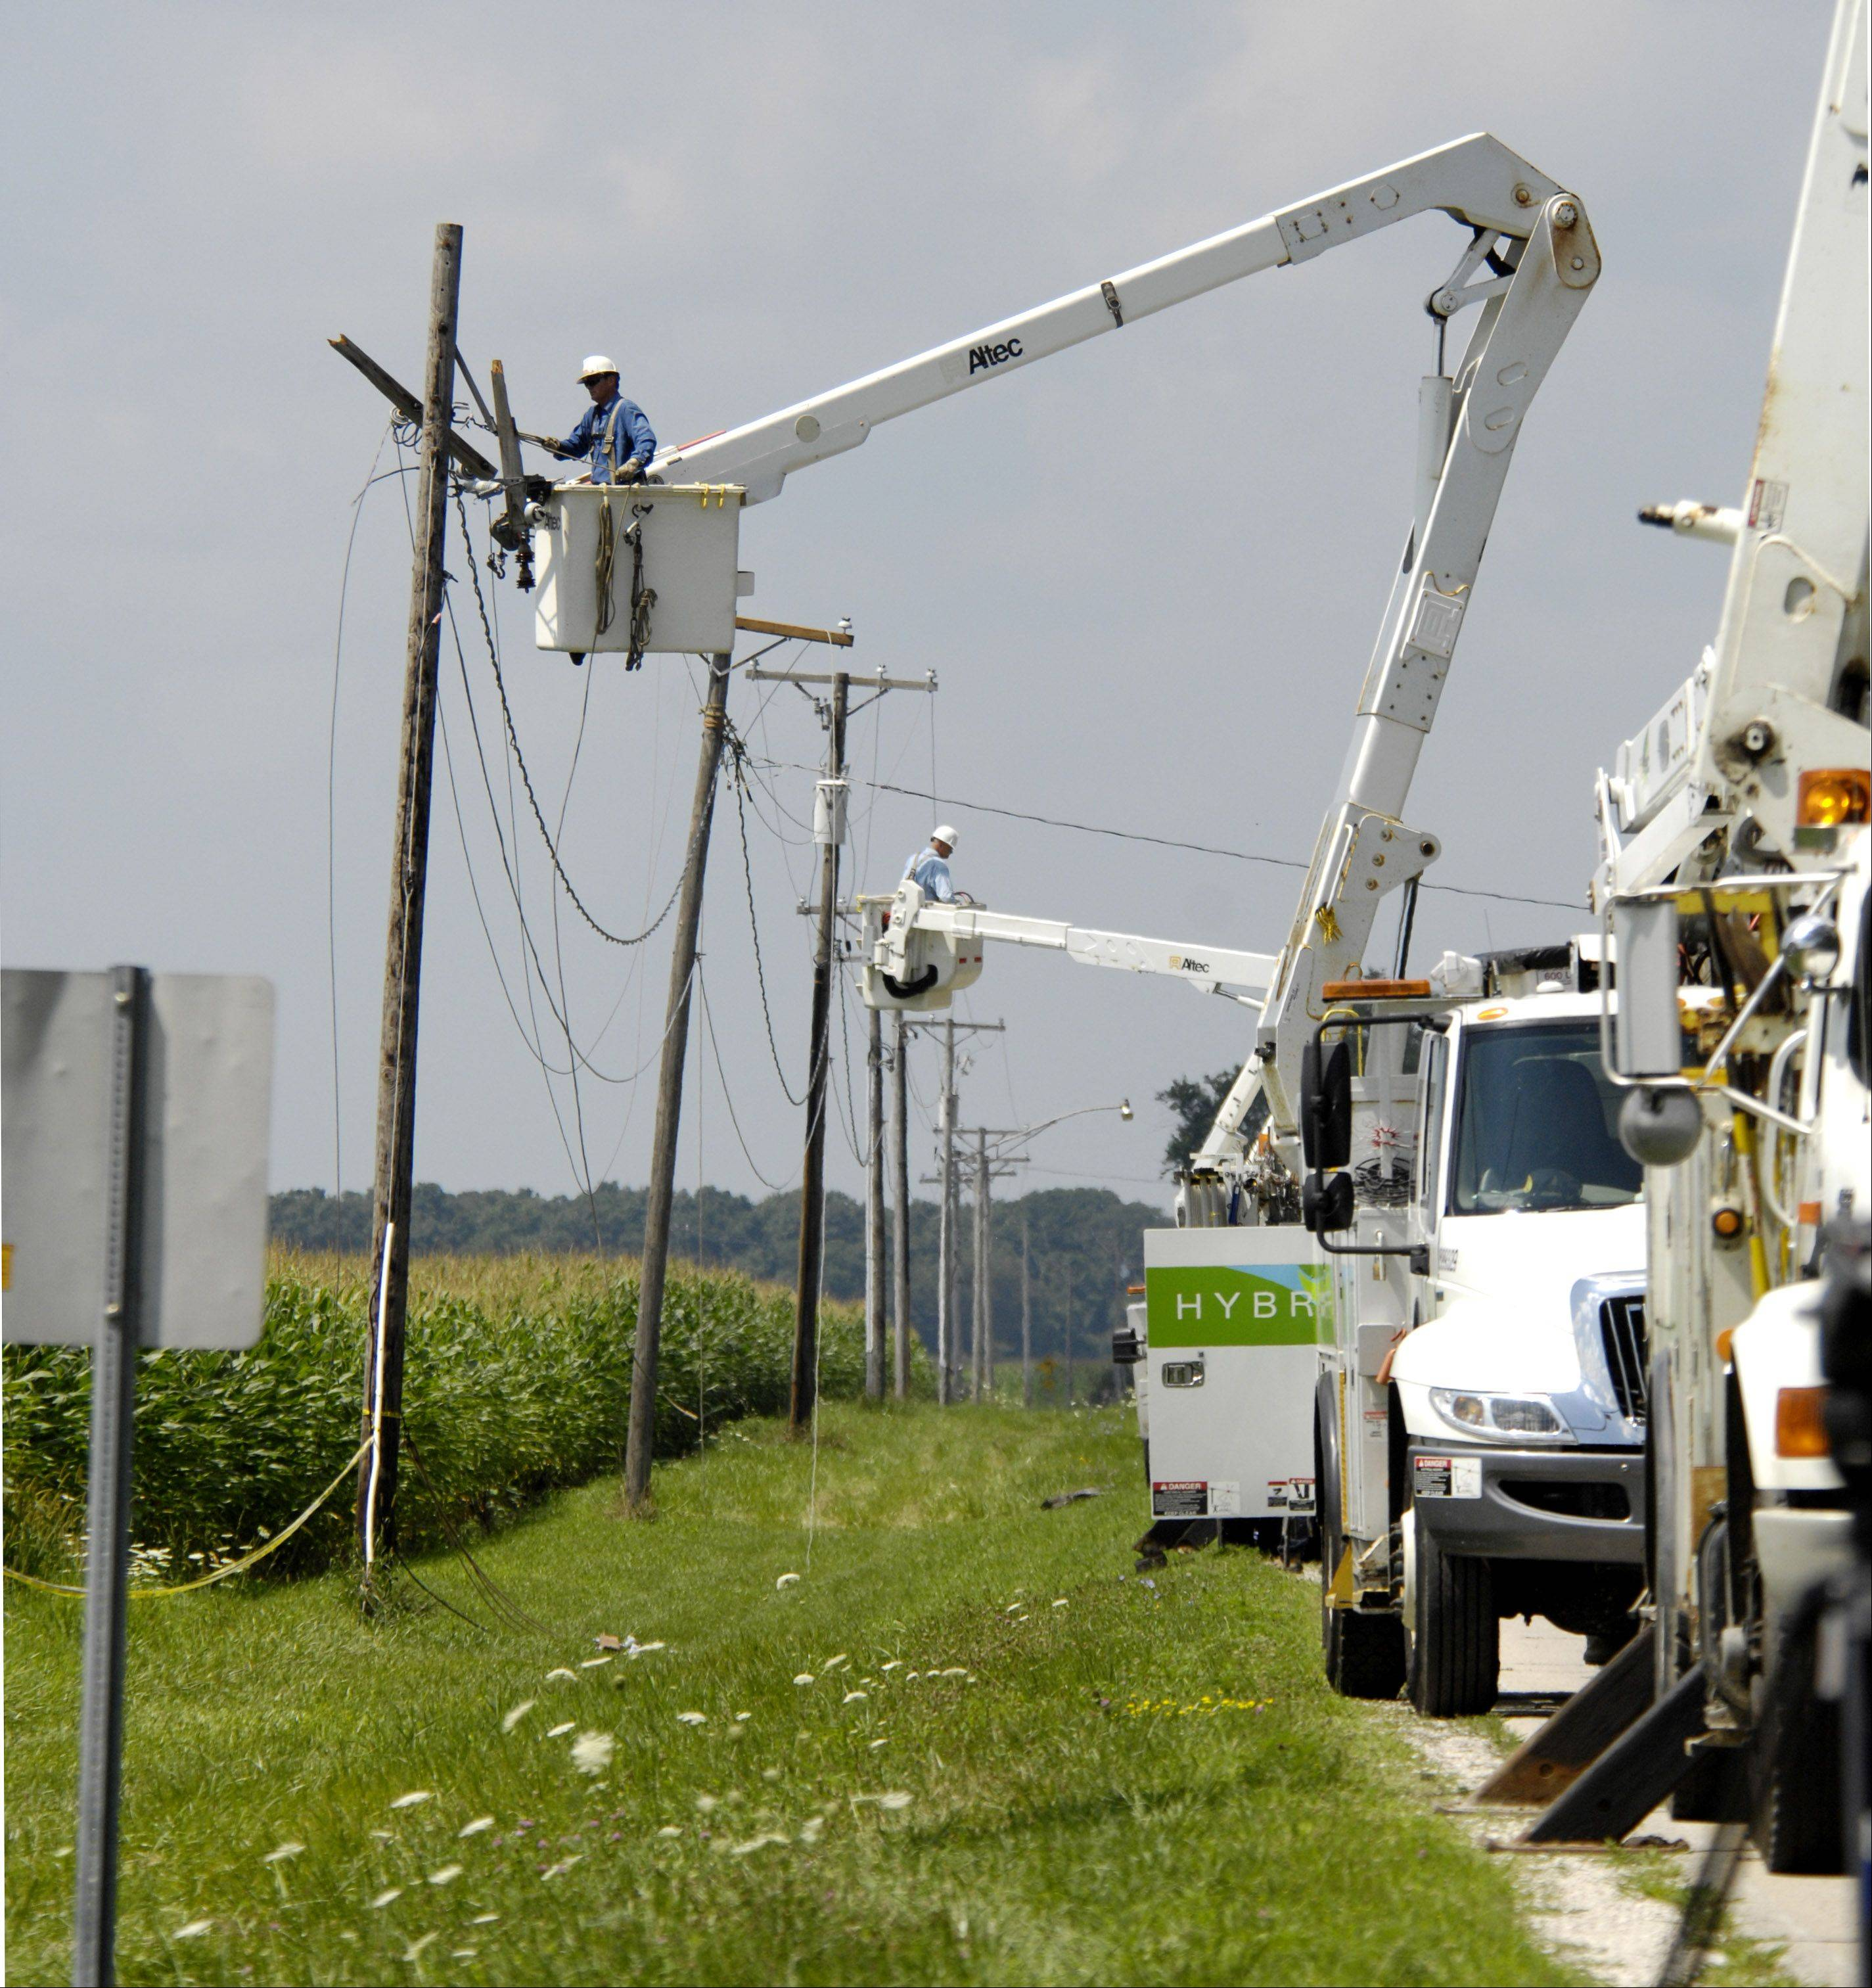 ComEd crews work to restore electricity near Sugar Grove after an experimental airplane clipped the power lines before crashing into a cornfield Sunday. The crash killed the plane's pilot, a 73-year-old Aurora man who'd survived two previous crashes.